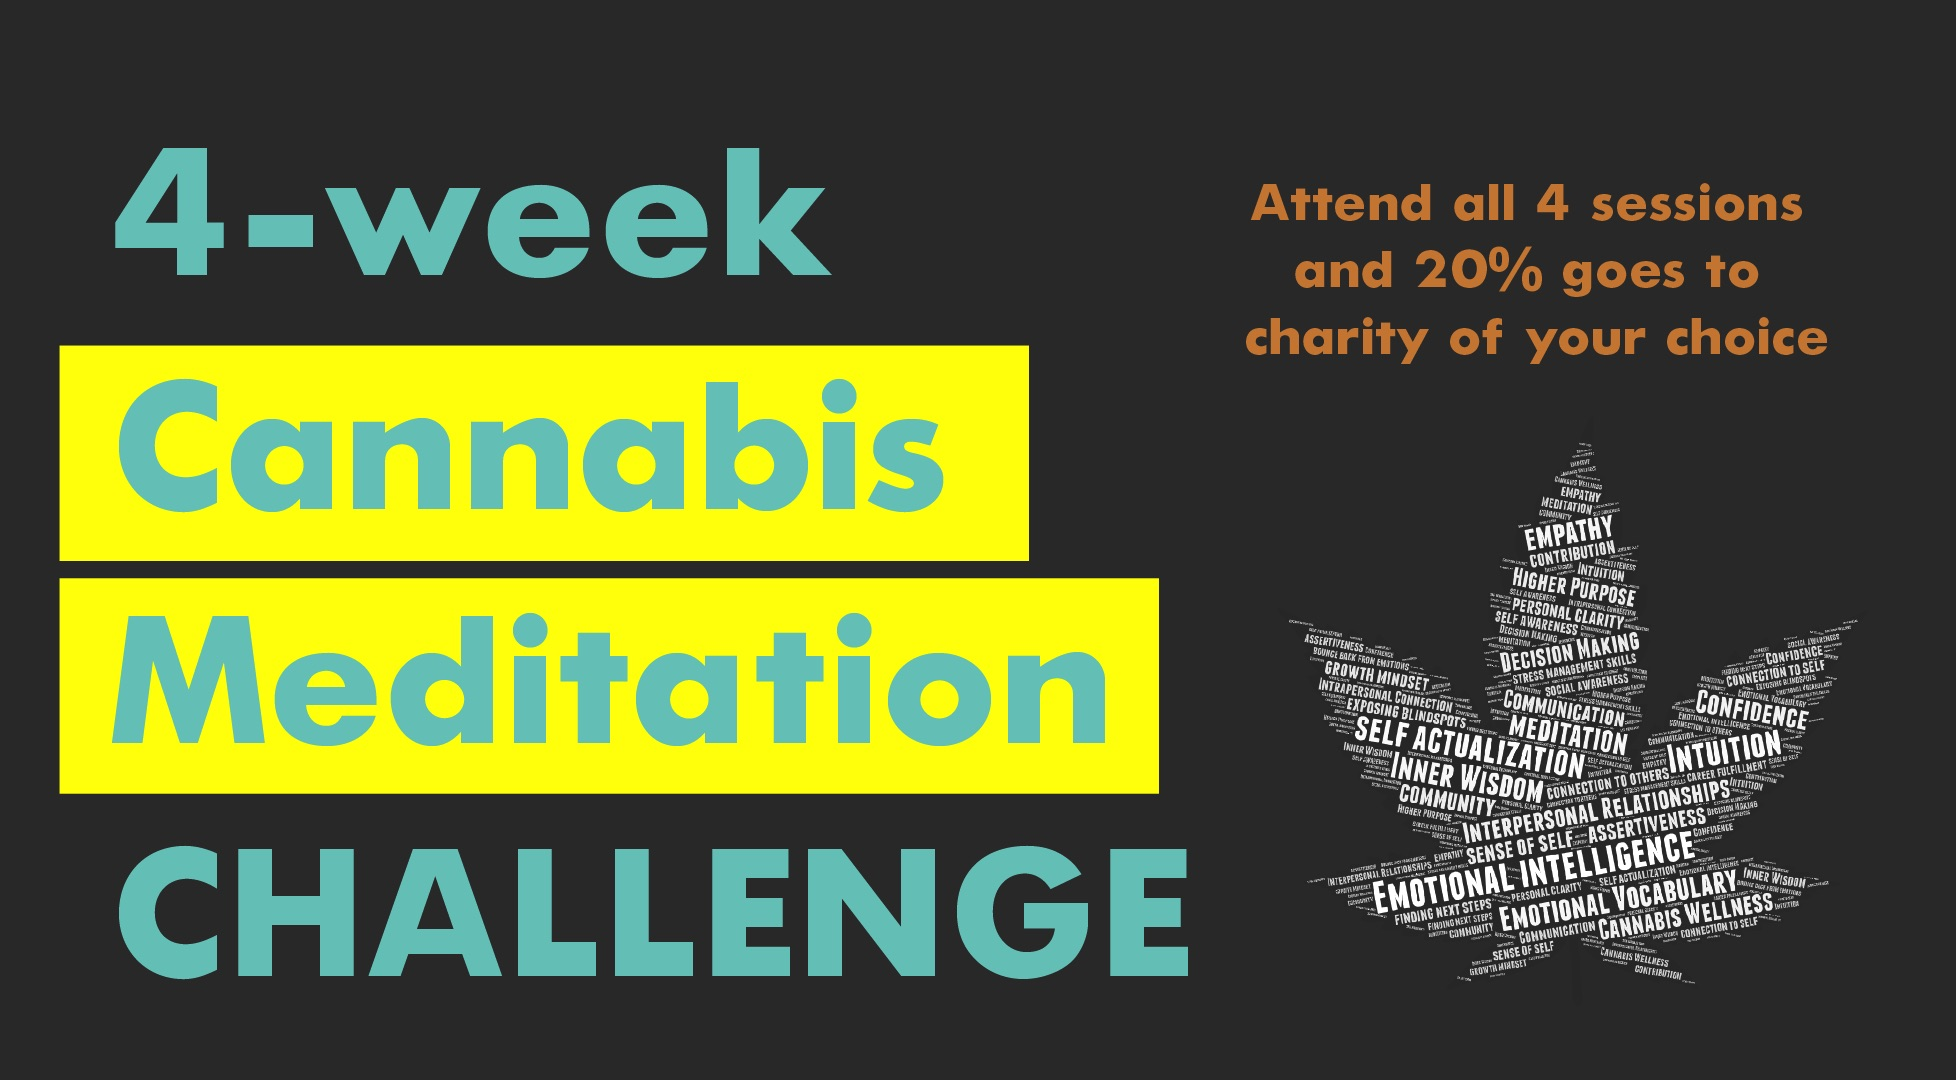 4-Week Cannabis Meditation Challenge